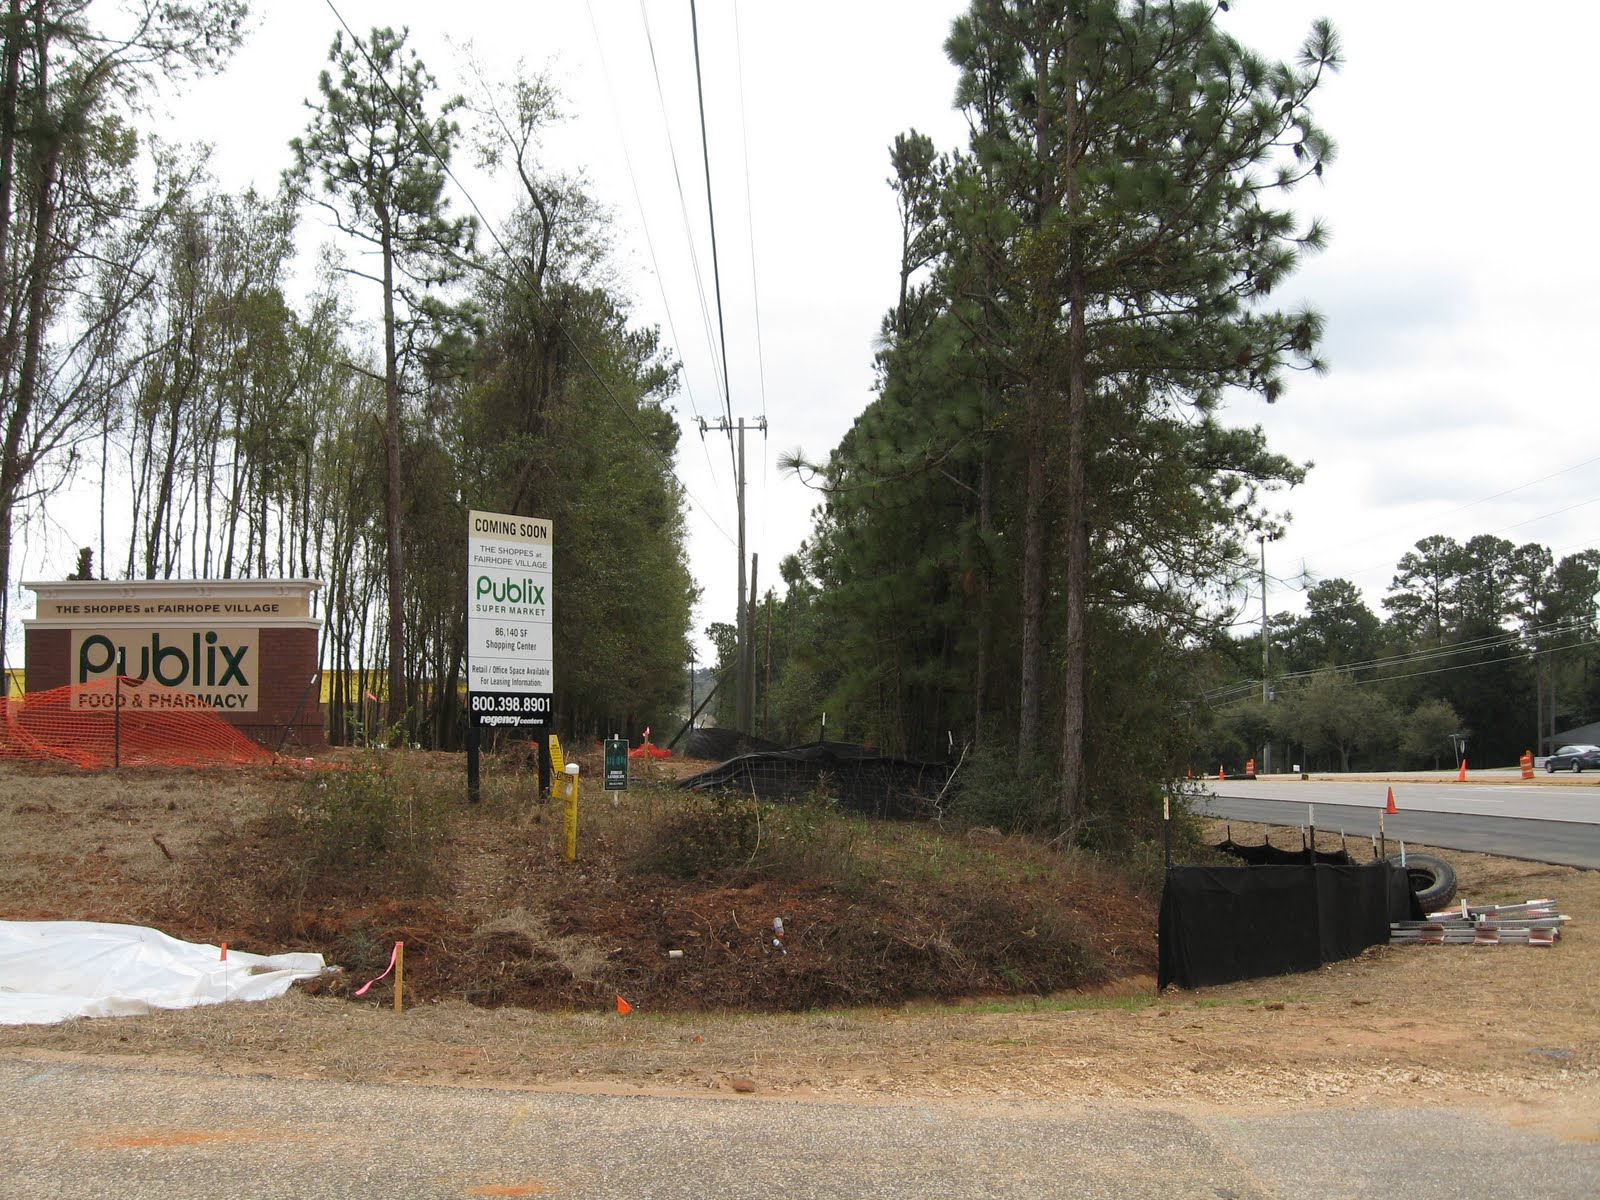 The Fairhope Times Phony Landscaping Company Cut Publix Bank Trees